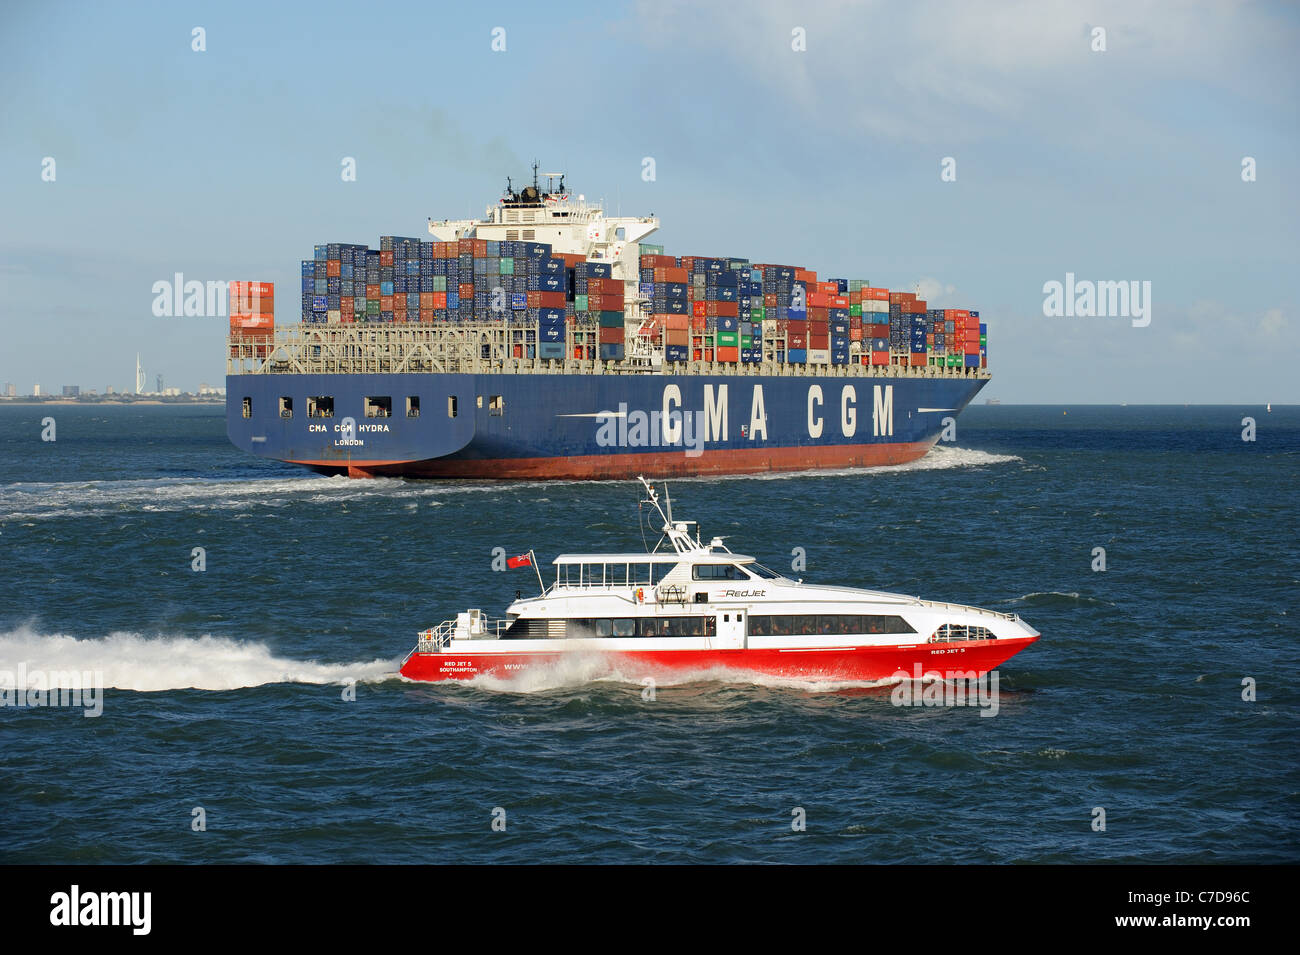 Fastcat passenger ferry crossing The Solent southern England UK Passing the CMA CGM Hydra a container carrier outbound - Stock Image